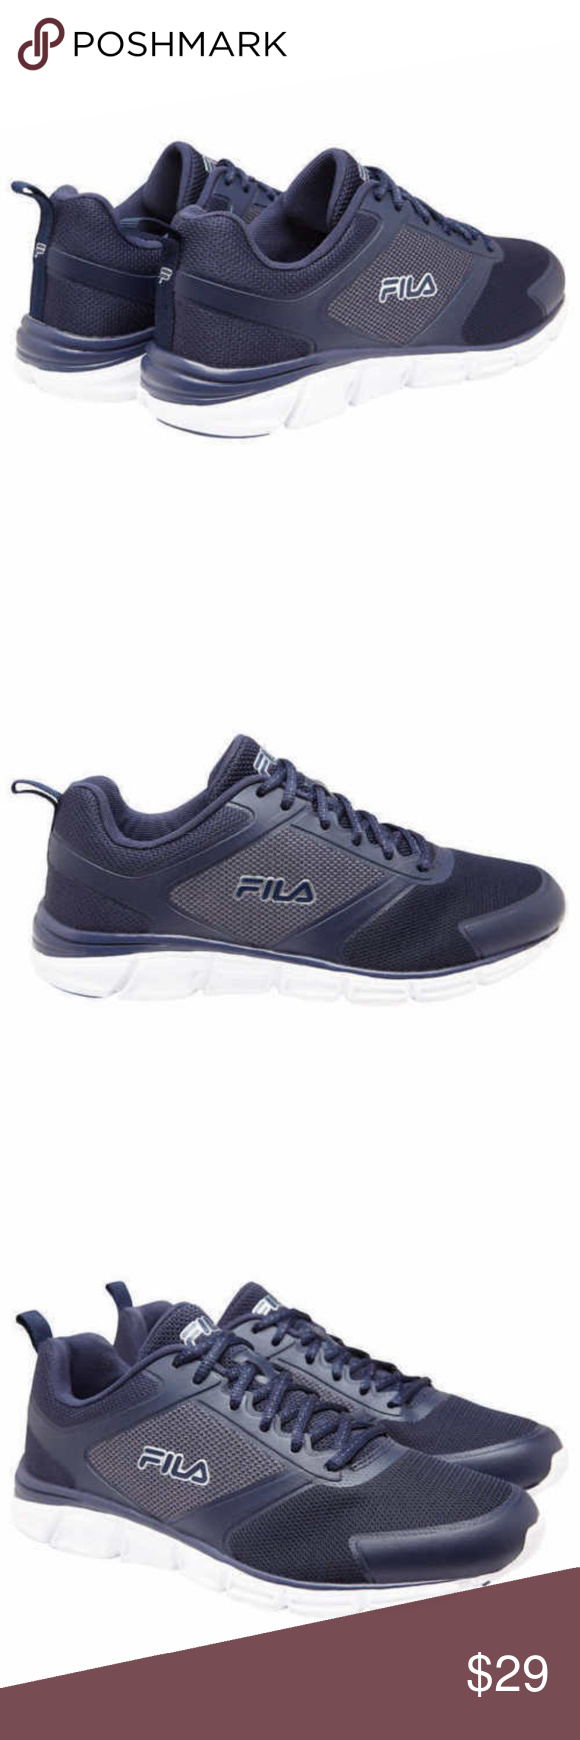 6908c920ca8a Fila Men s Memory Steelsprint Athletic Shoes Navy Color  Navy Move and flex  freely with these